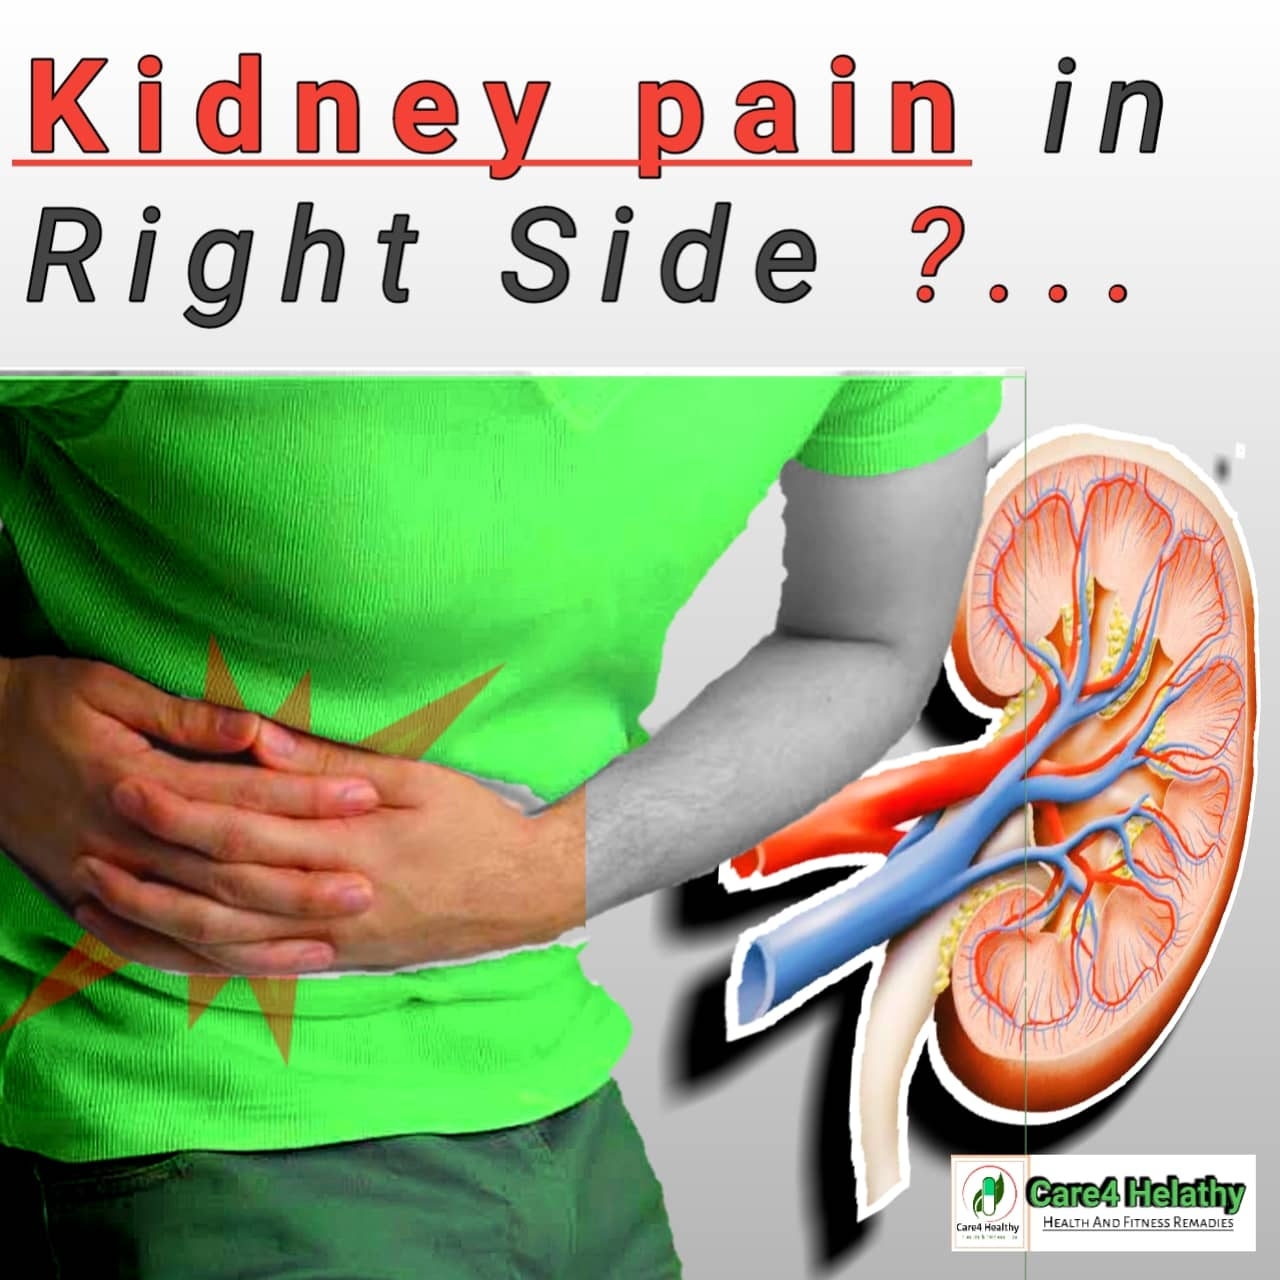 These 5 Reasons Can Be Behind The Pain In The Right Kidney Kidney Infection Symptoms Care4healthy Com Weight Loss Cancer Health Pregnancy Beauty And Personal Care